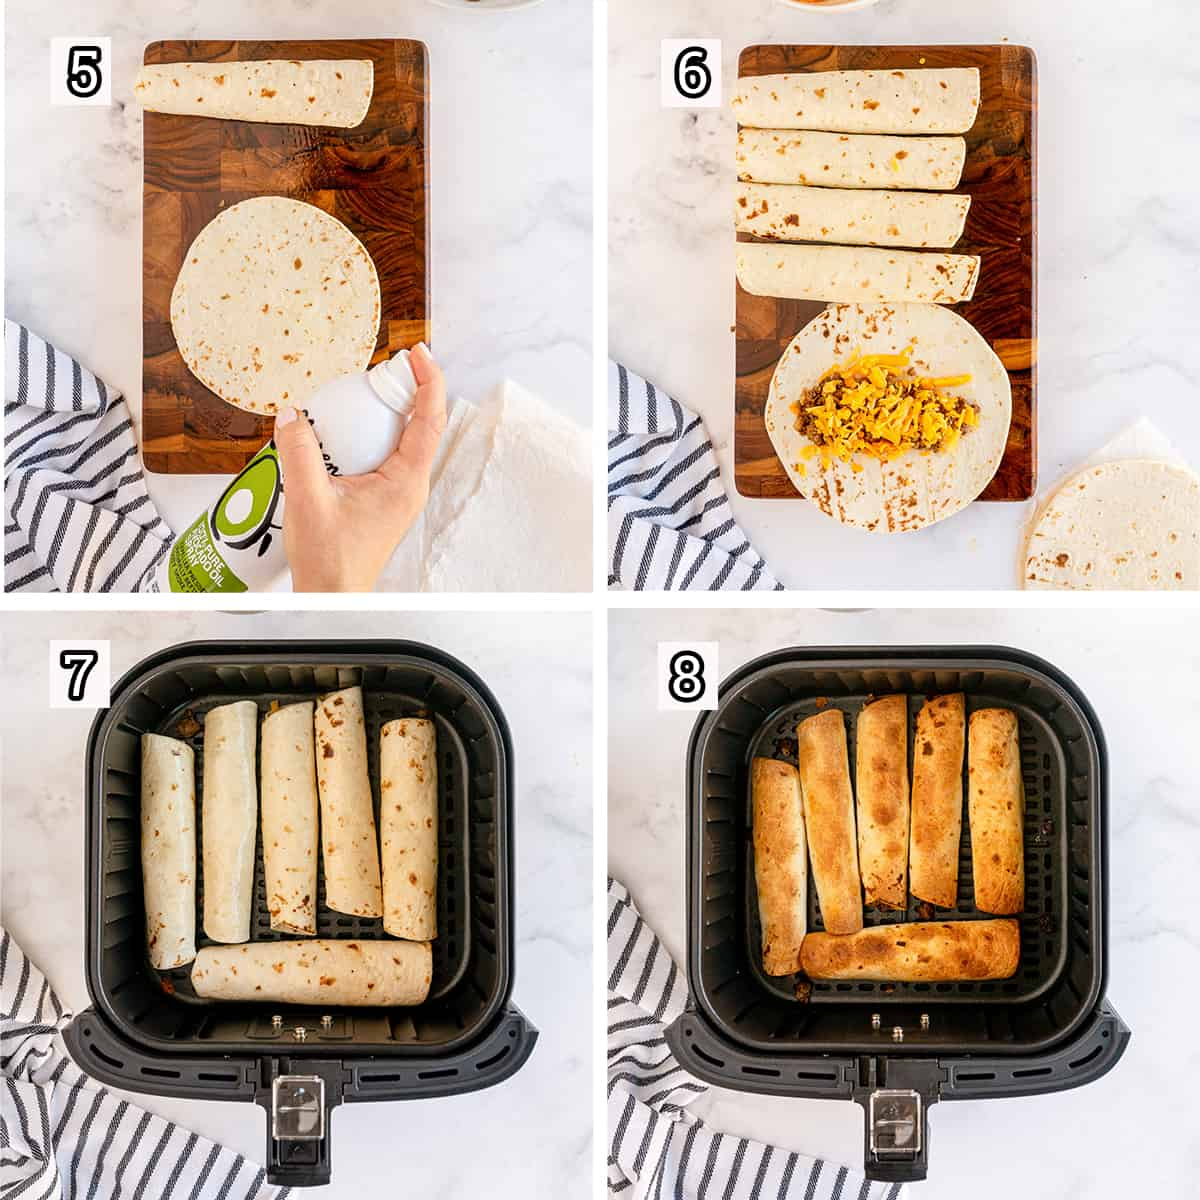 Tortillas are filled and cooked in an air fryer.